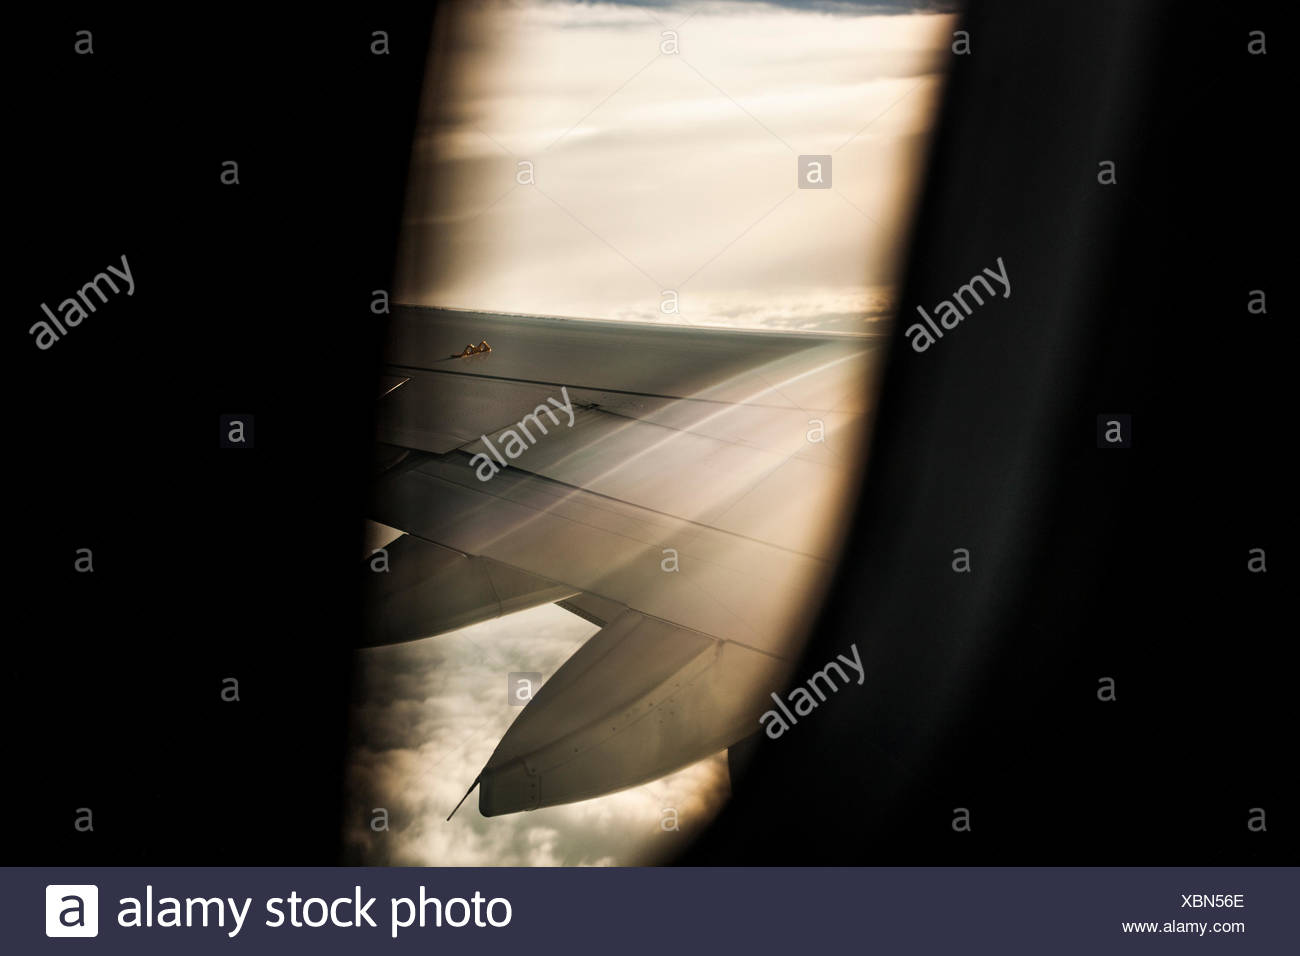 Detail of an airplane's wing while in flight - Stock Image